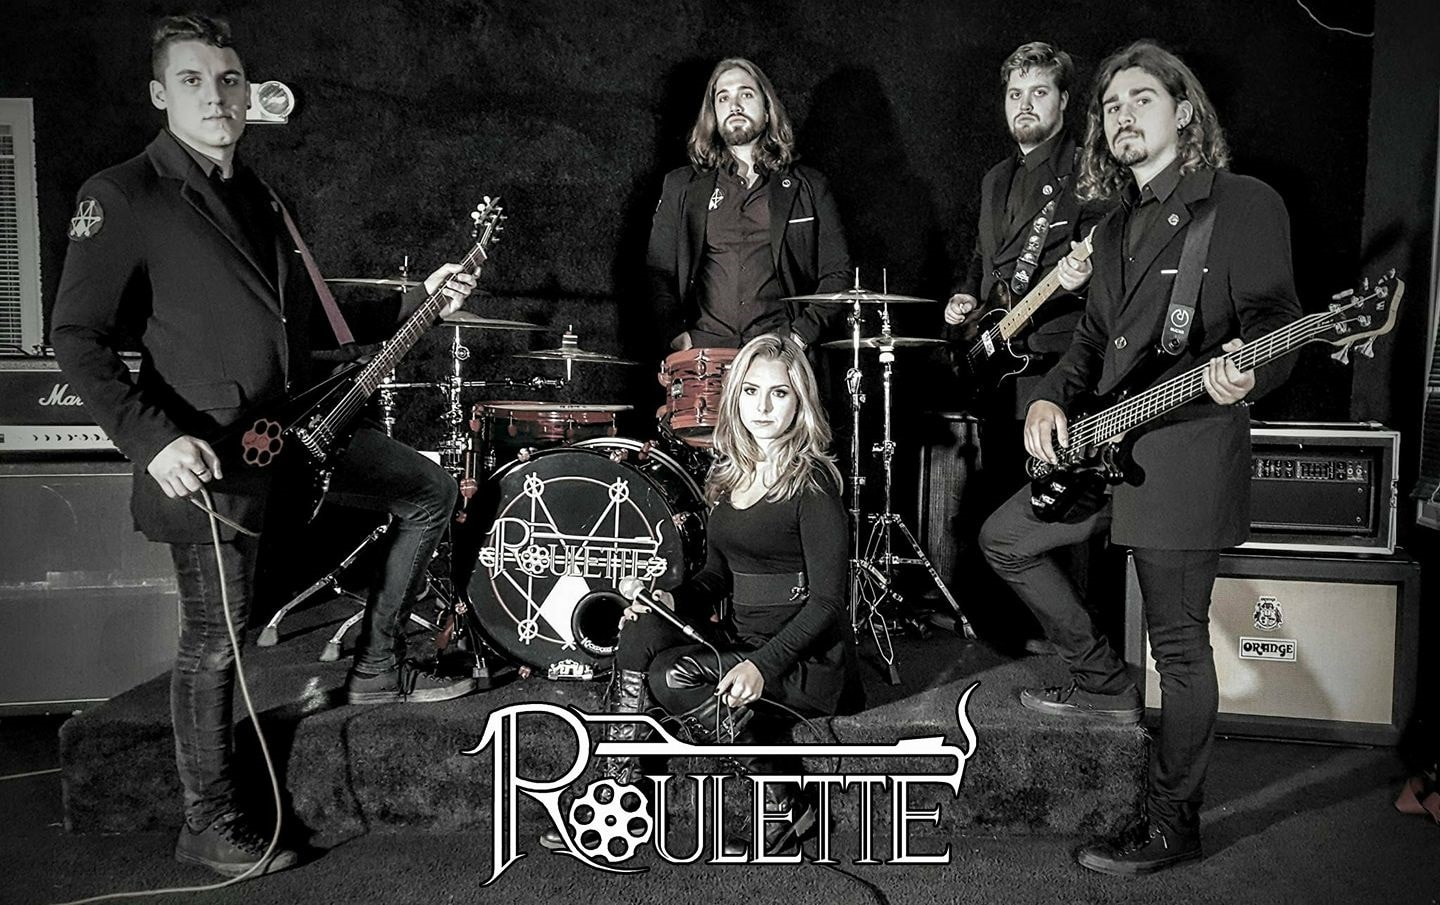 Roulett Show Band